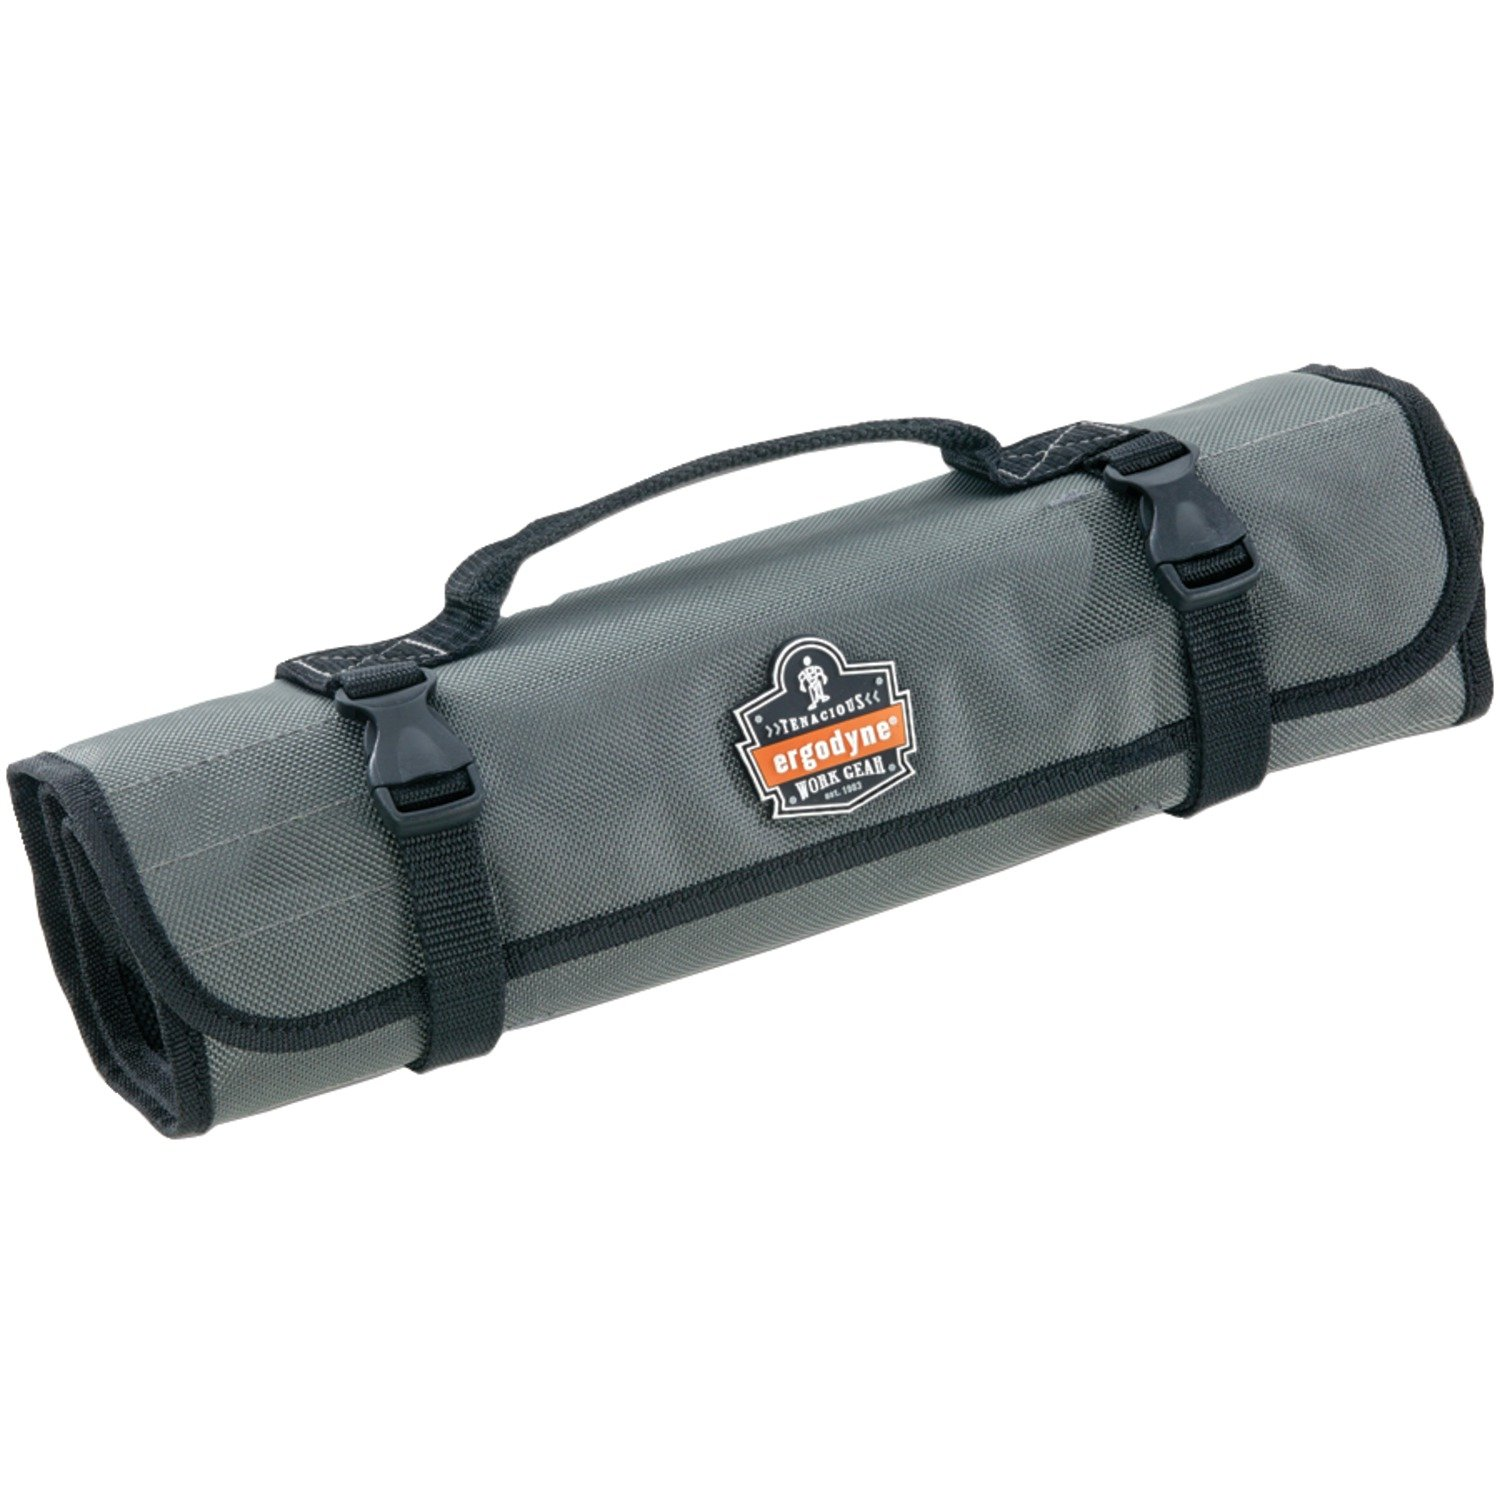 Arsenal 5870 Tool Roll-Up Pouch, 25-Pockets, Polyester, Gray by Ergodyne (Image #1)